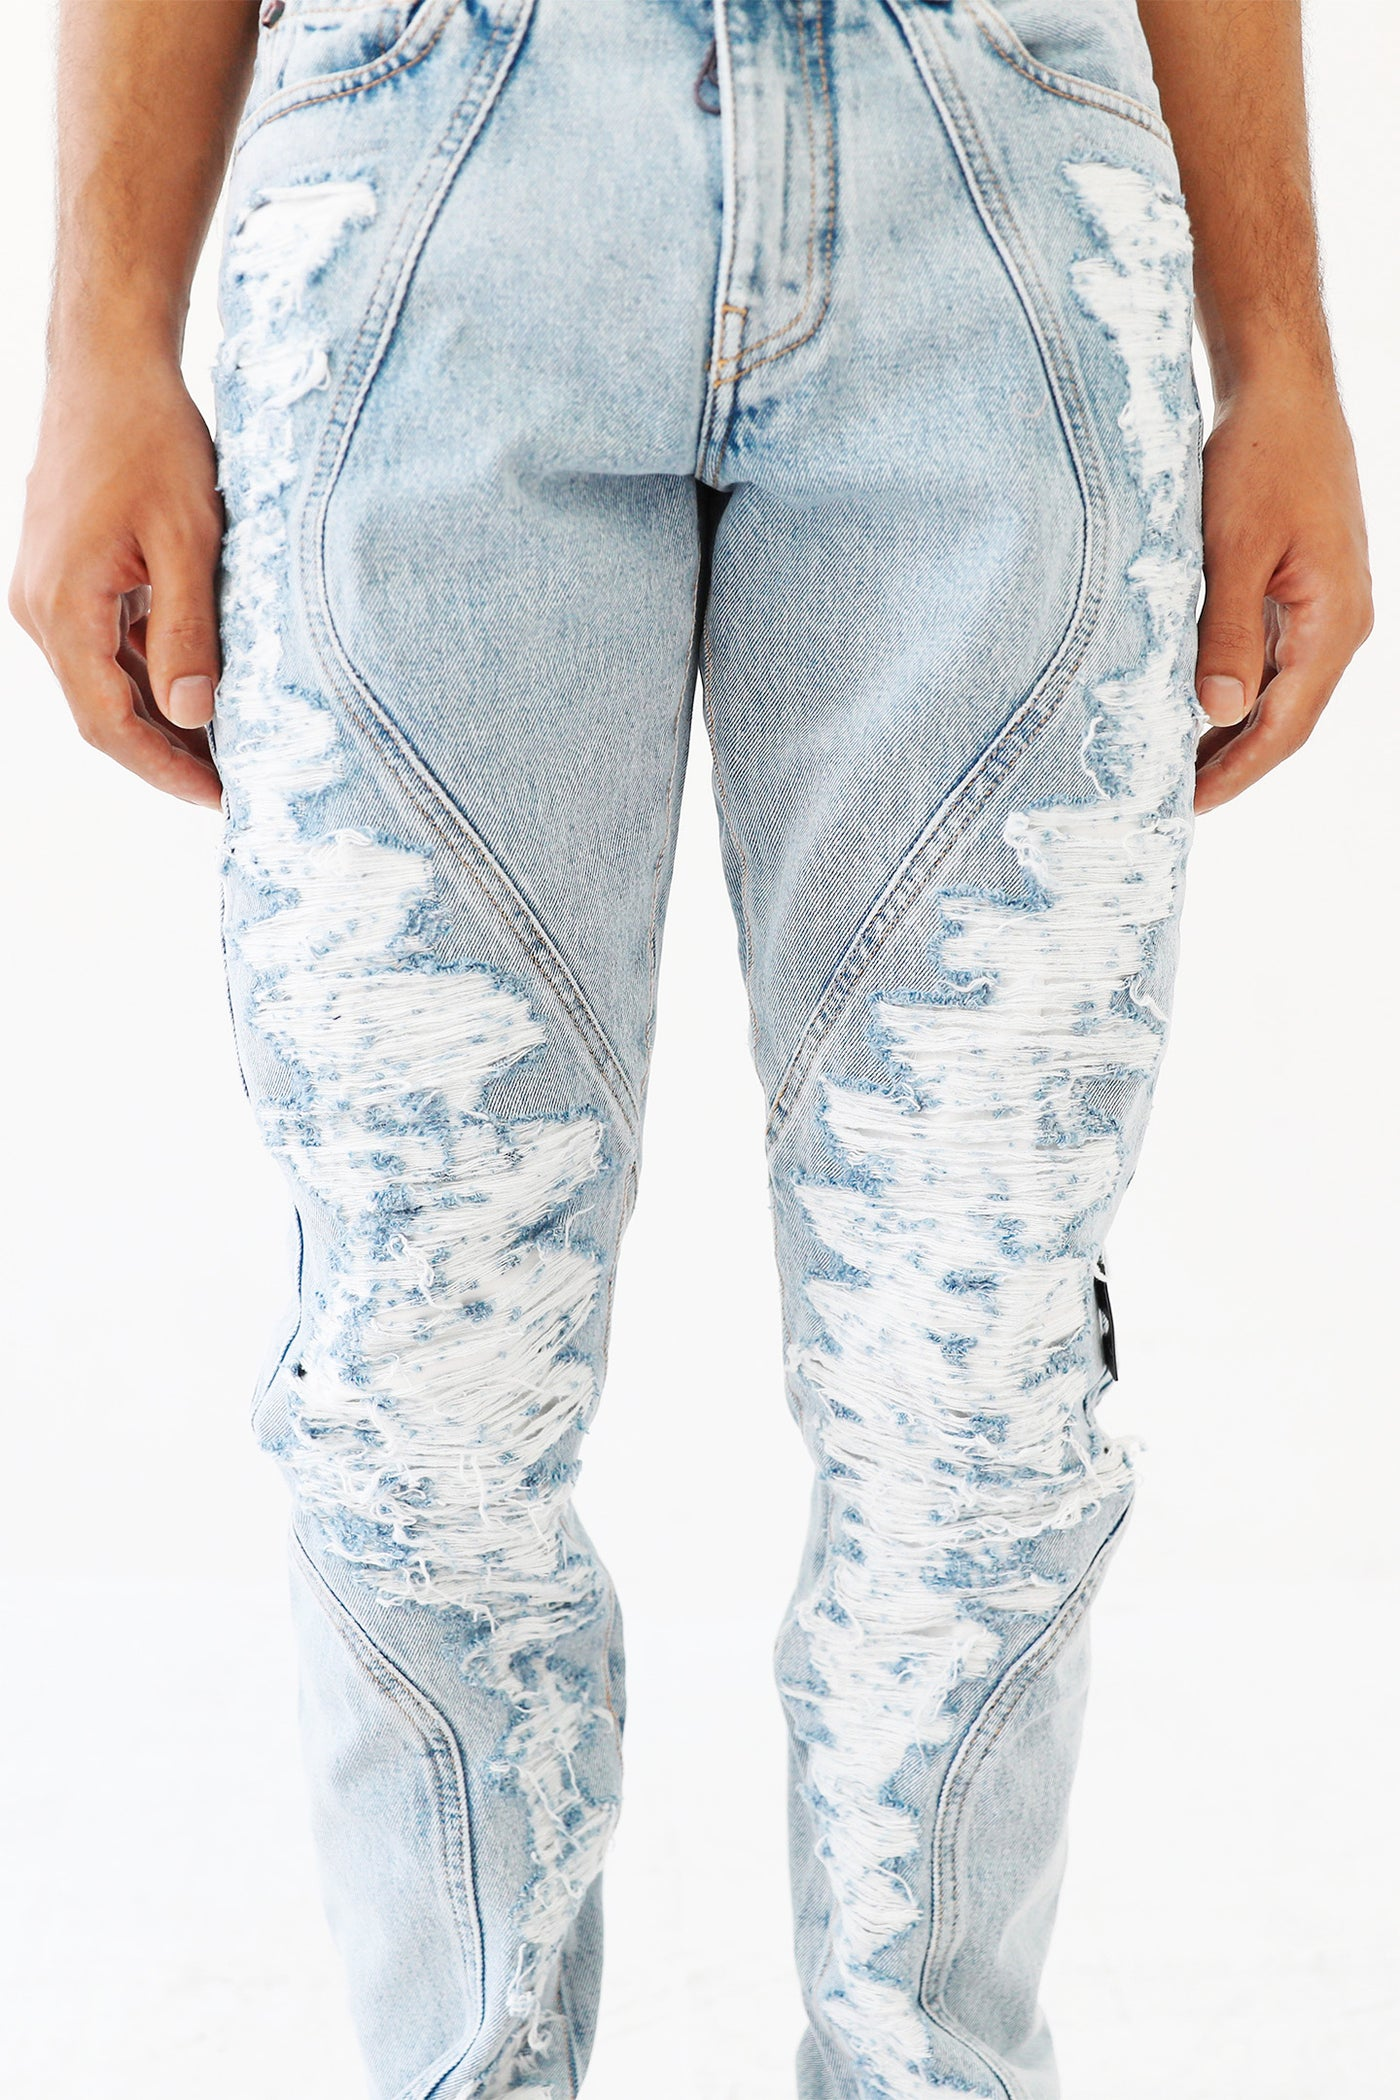 Off White C/o Who Decides War Blue Distressed Denim